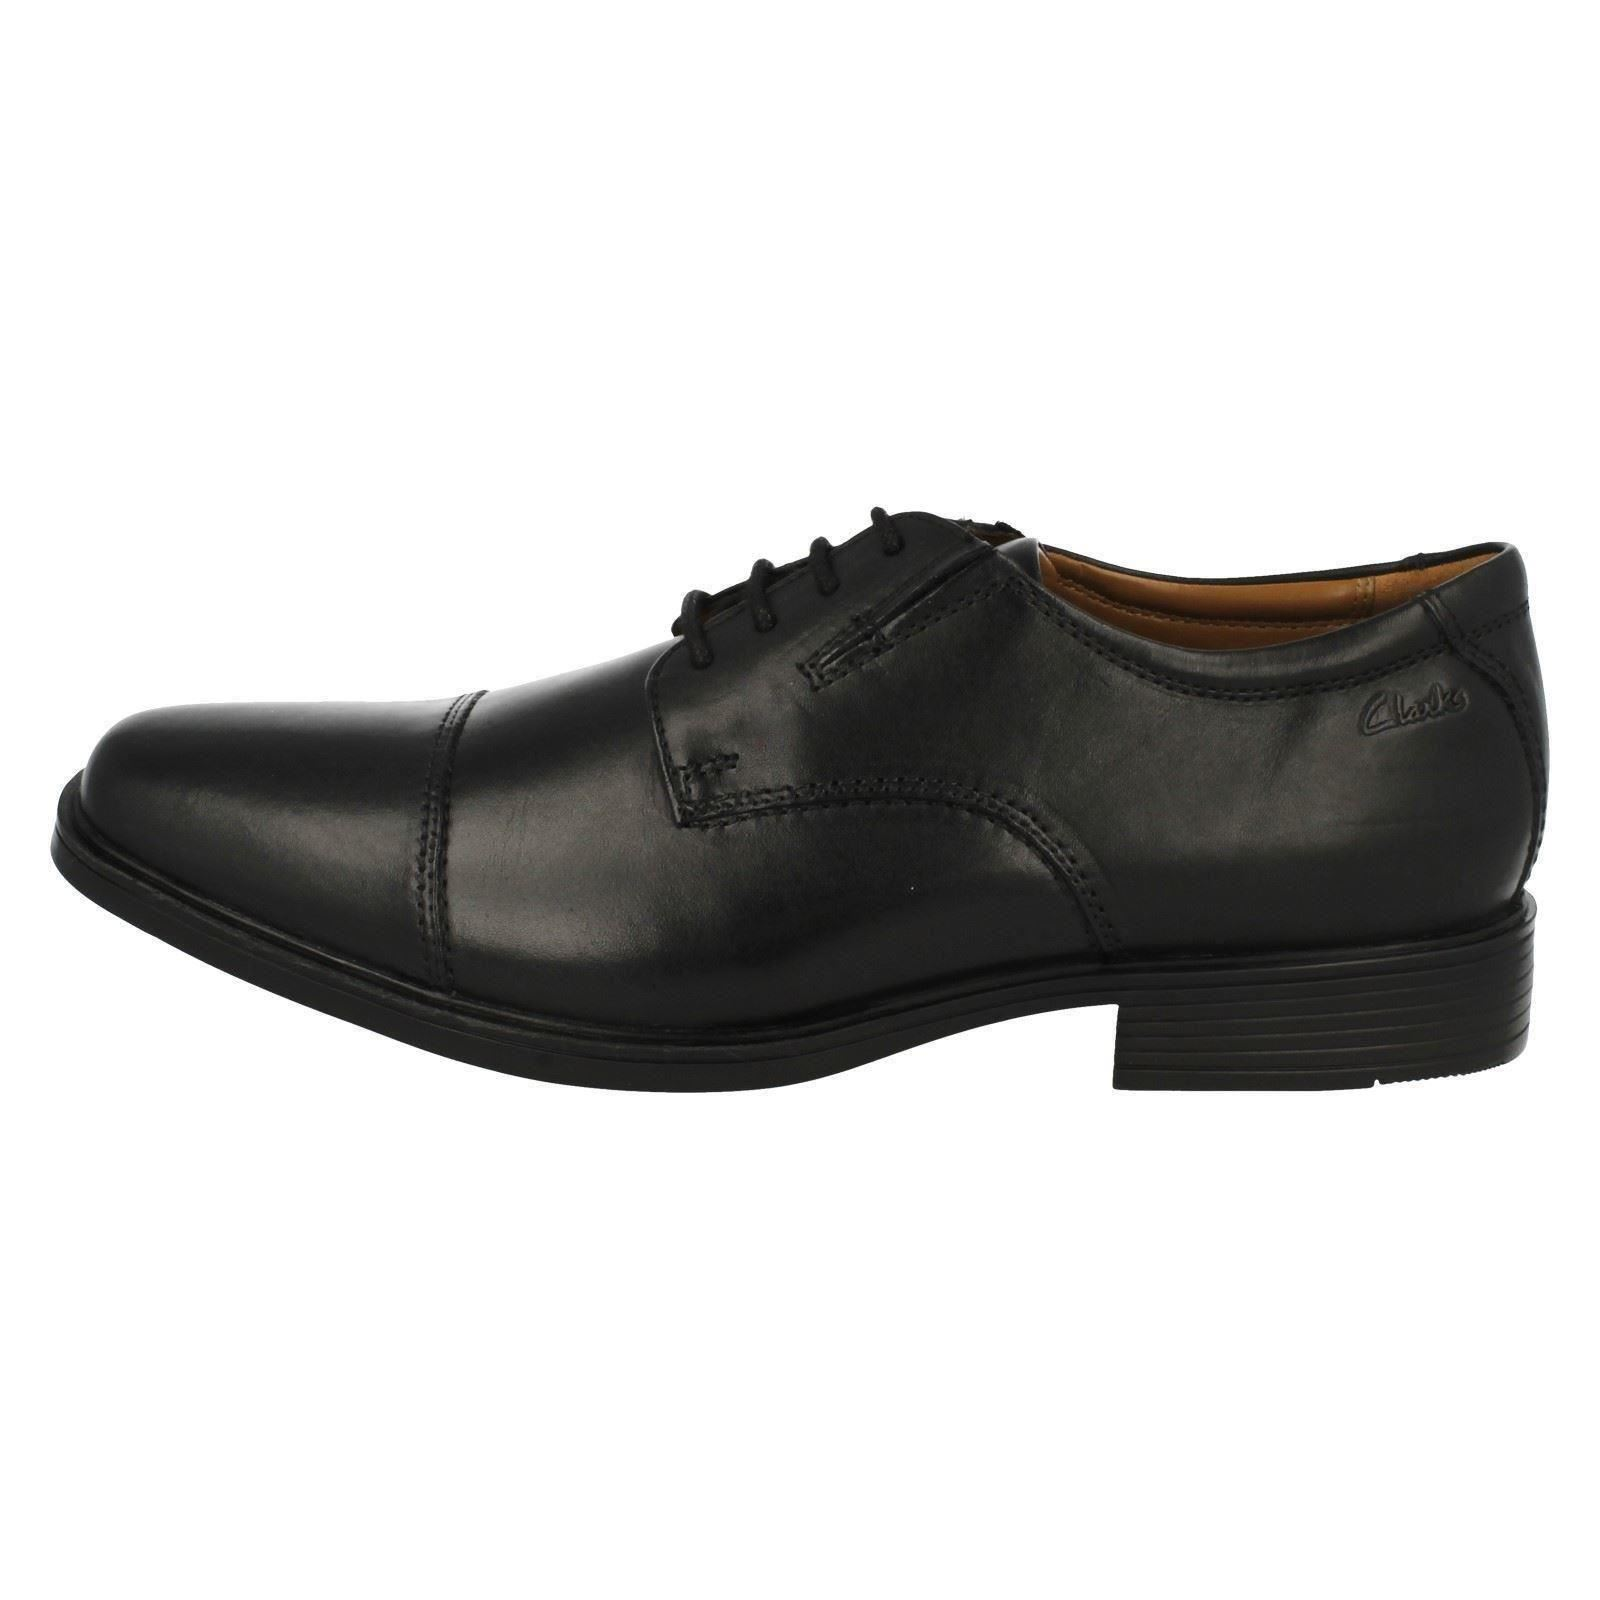 Mens-Clarks-Formal-Lace-Up-Shoes-Tilden-Cap thumbnail 7